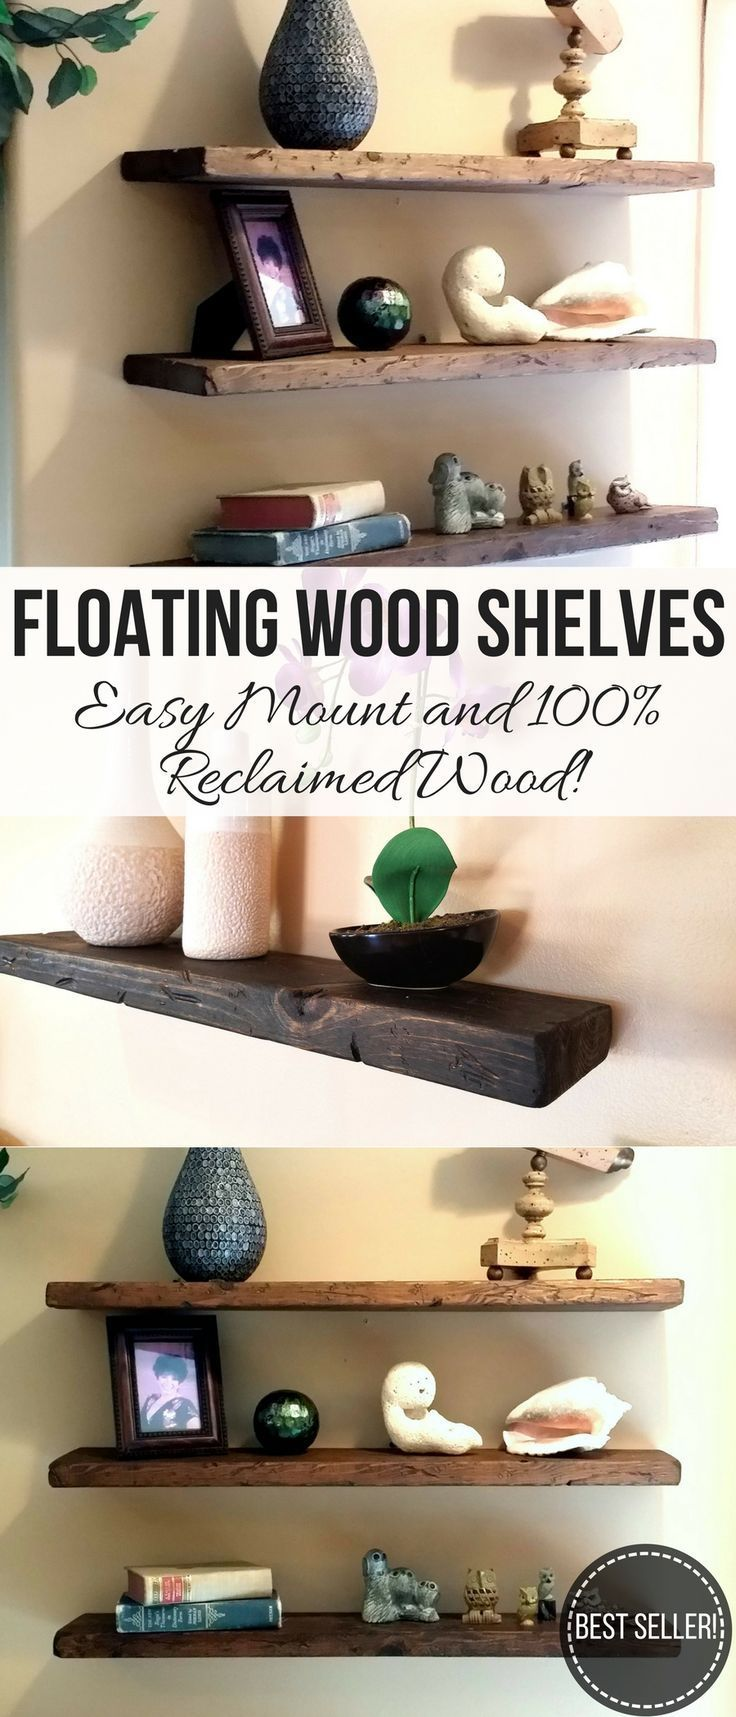 Only 19 These Reclaimed Wood Floating Shelves Will Add The Perfect Blend Of Rustic Charm And Contemporaty Minimalist Style To Yo Rustic Wood Floating Shelves